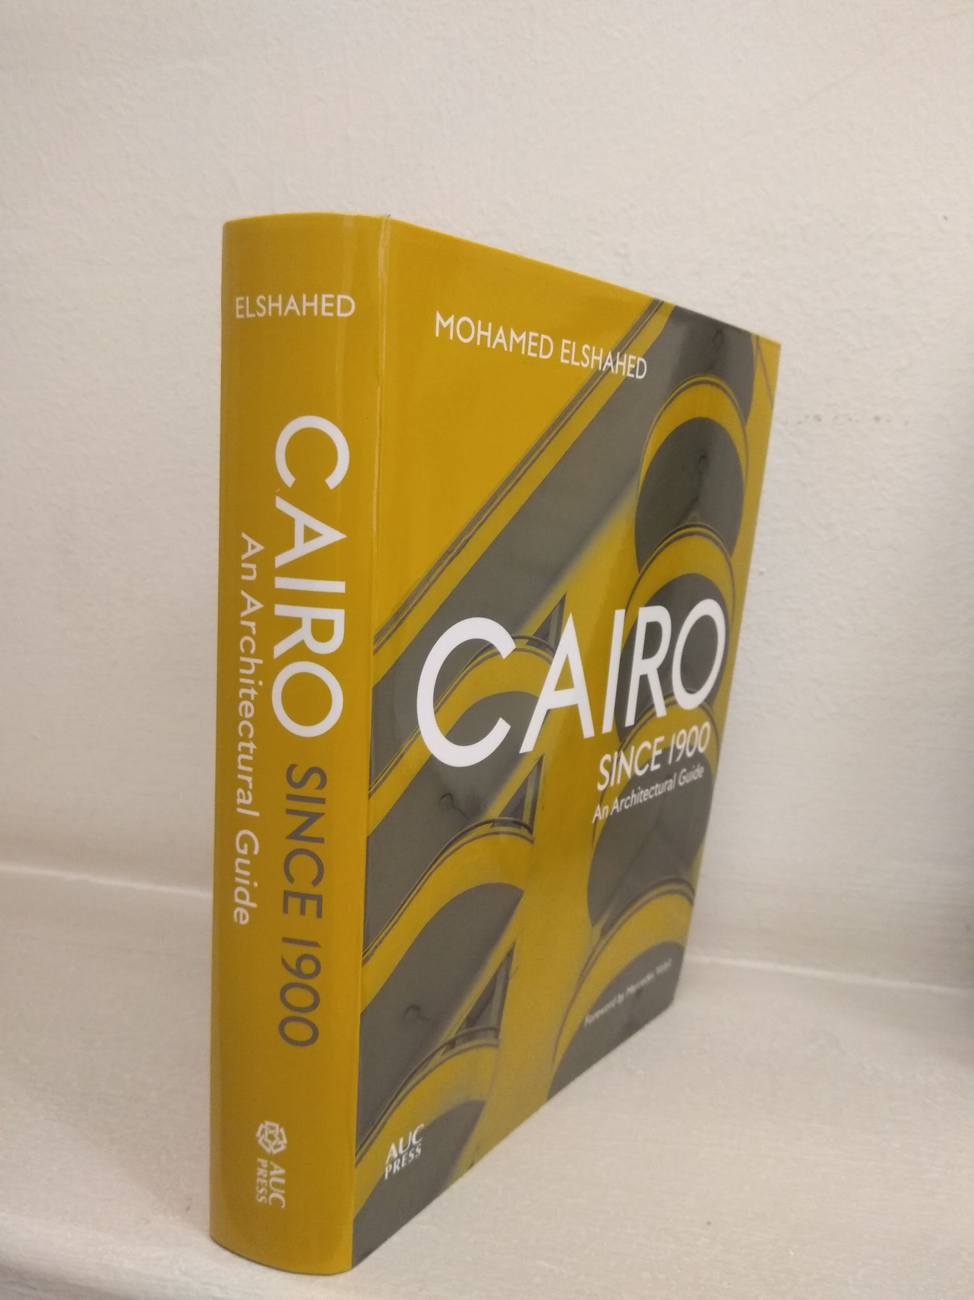 Cairo Since 1900: Book Review and Interview with the Author | by Shaimaa S. Ashour